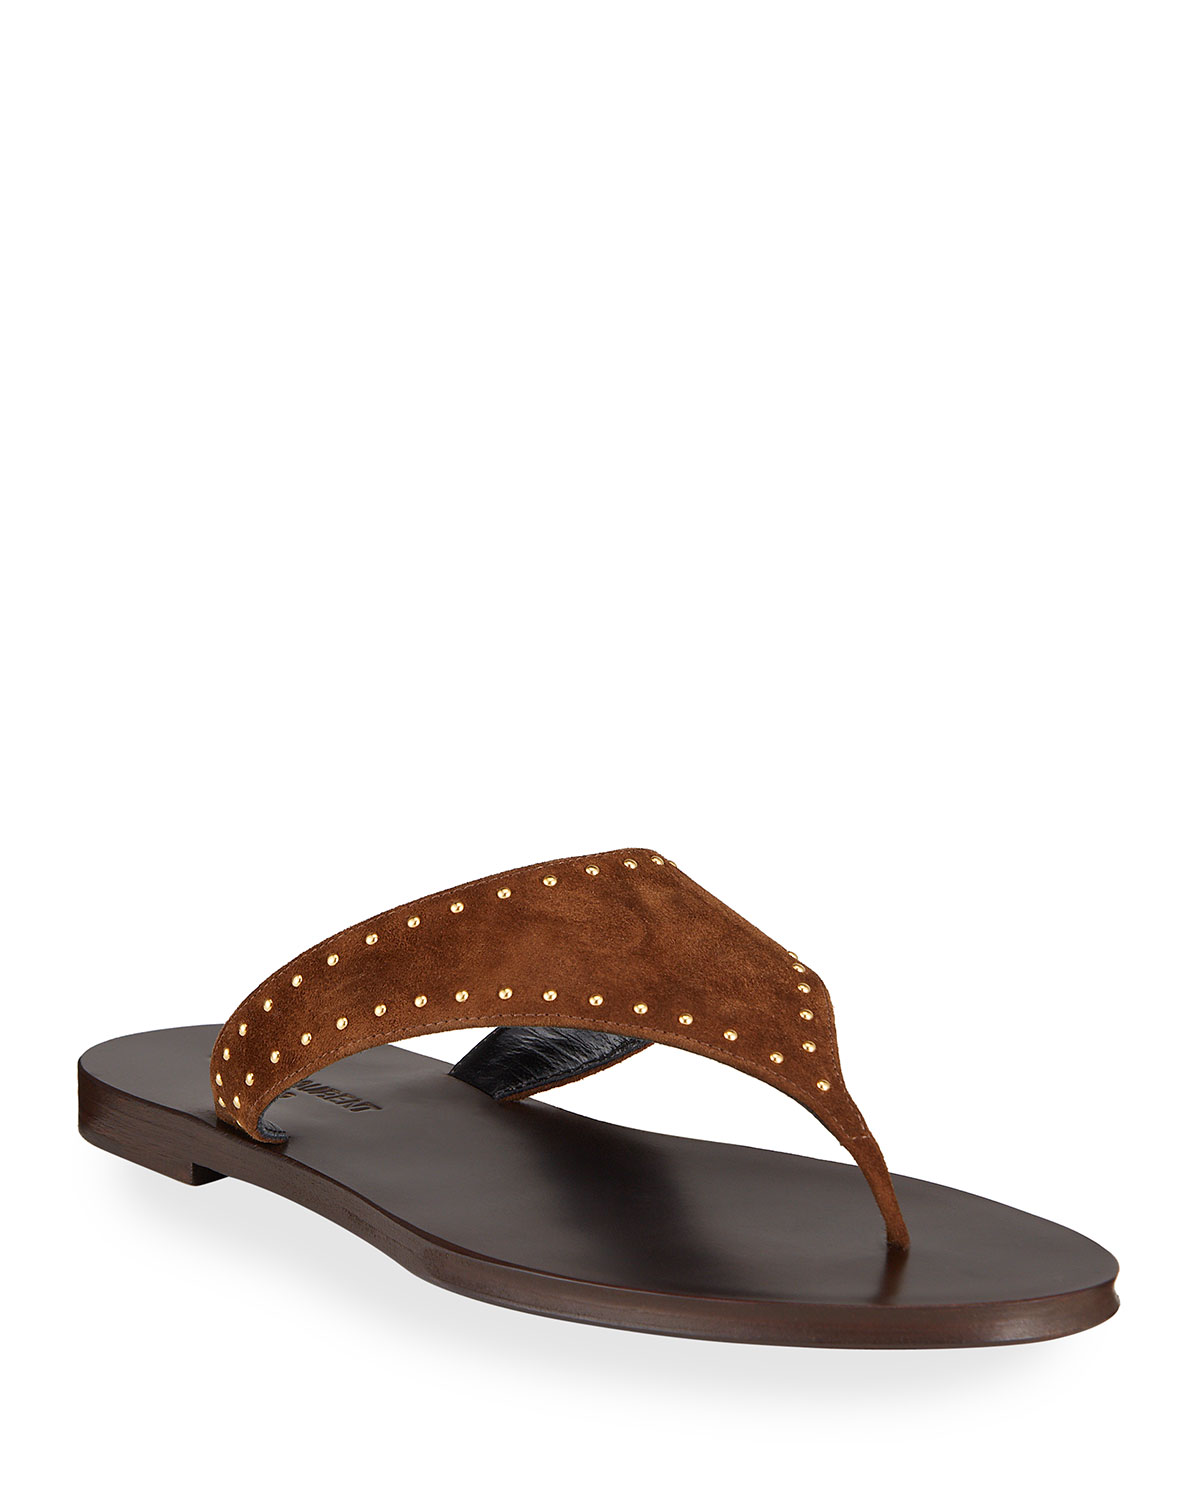 Saint Laurent Suedes GIA STUDDED SUEDE THONG SANDALS